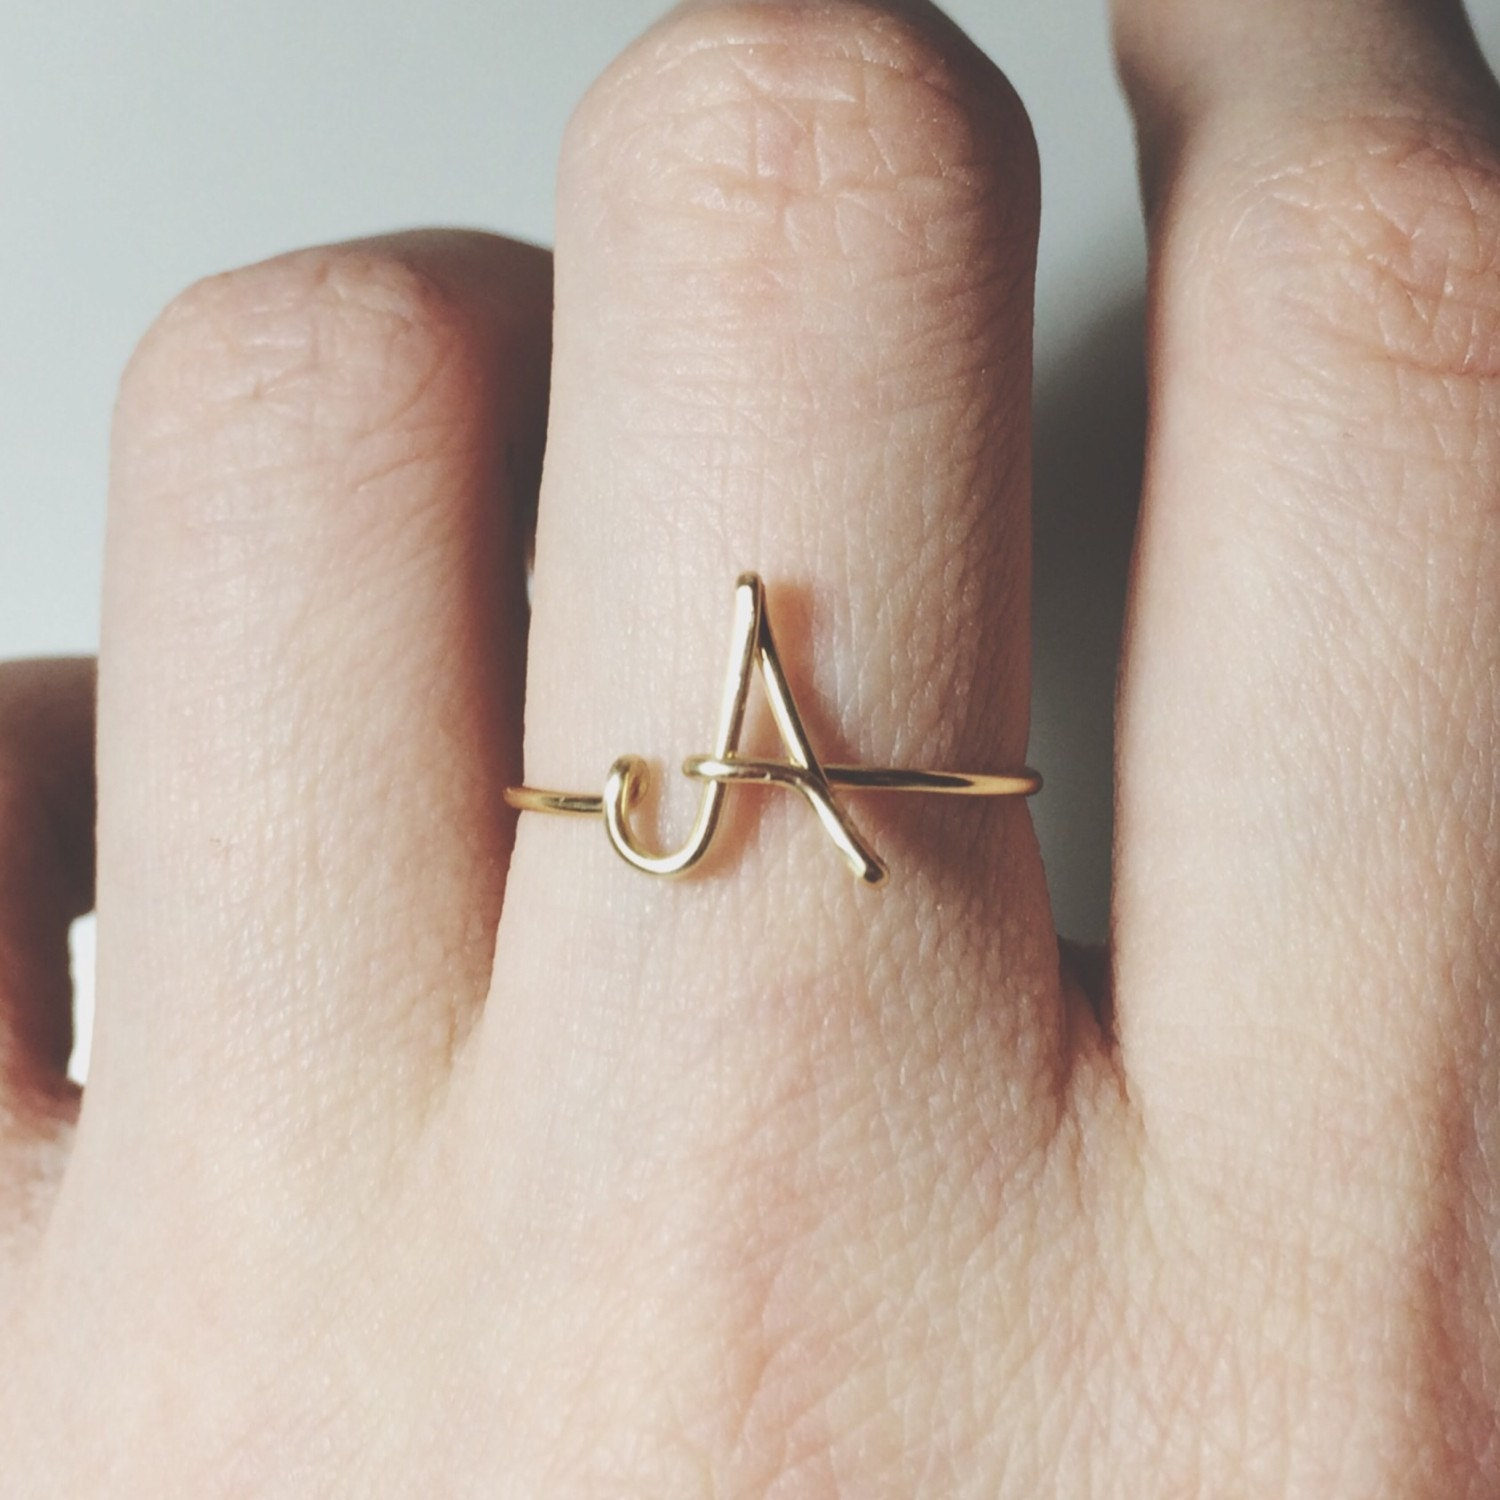 Custom Initial ring letter ring/gold/silver/knuckle ring midi